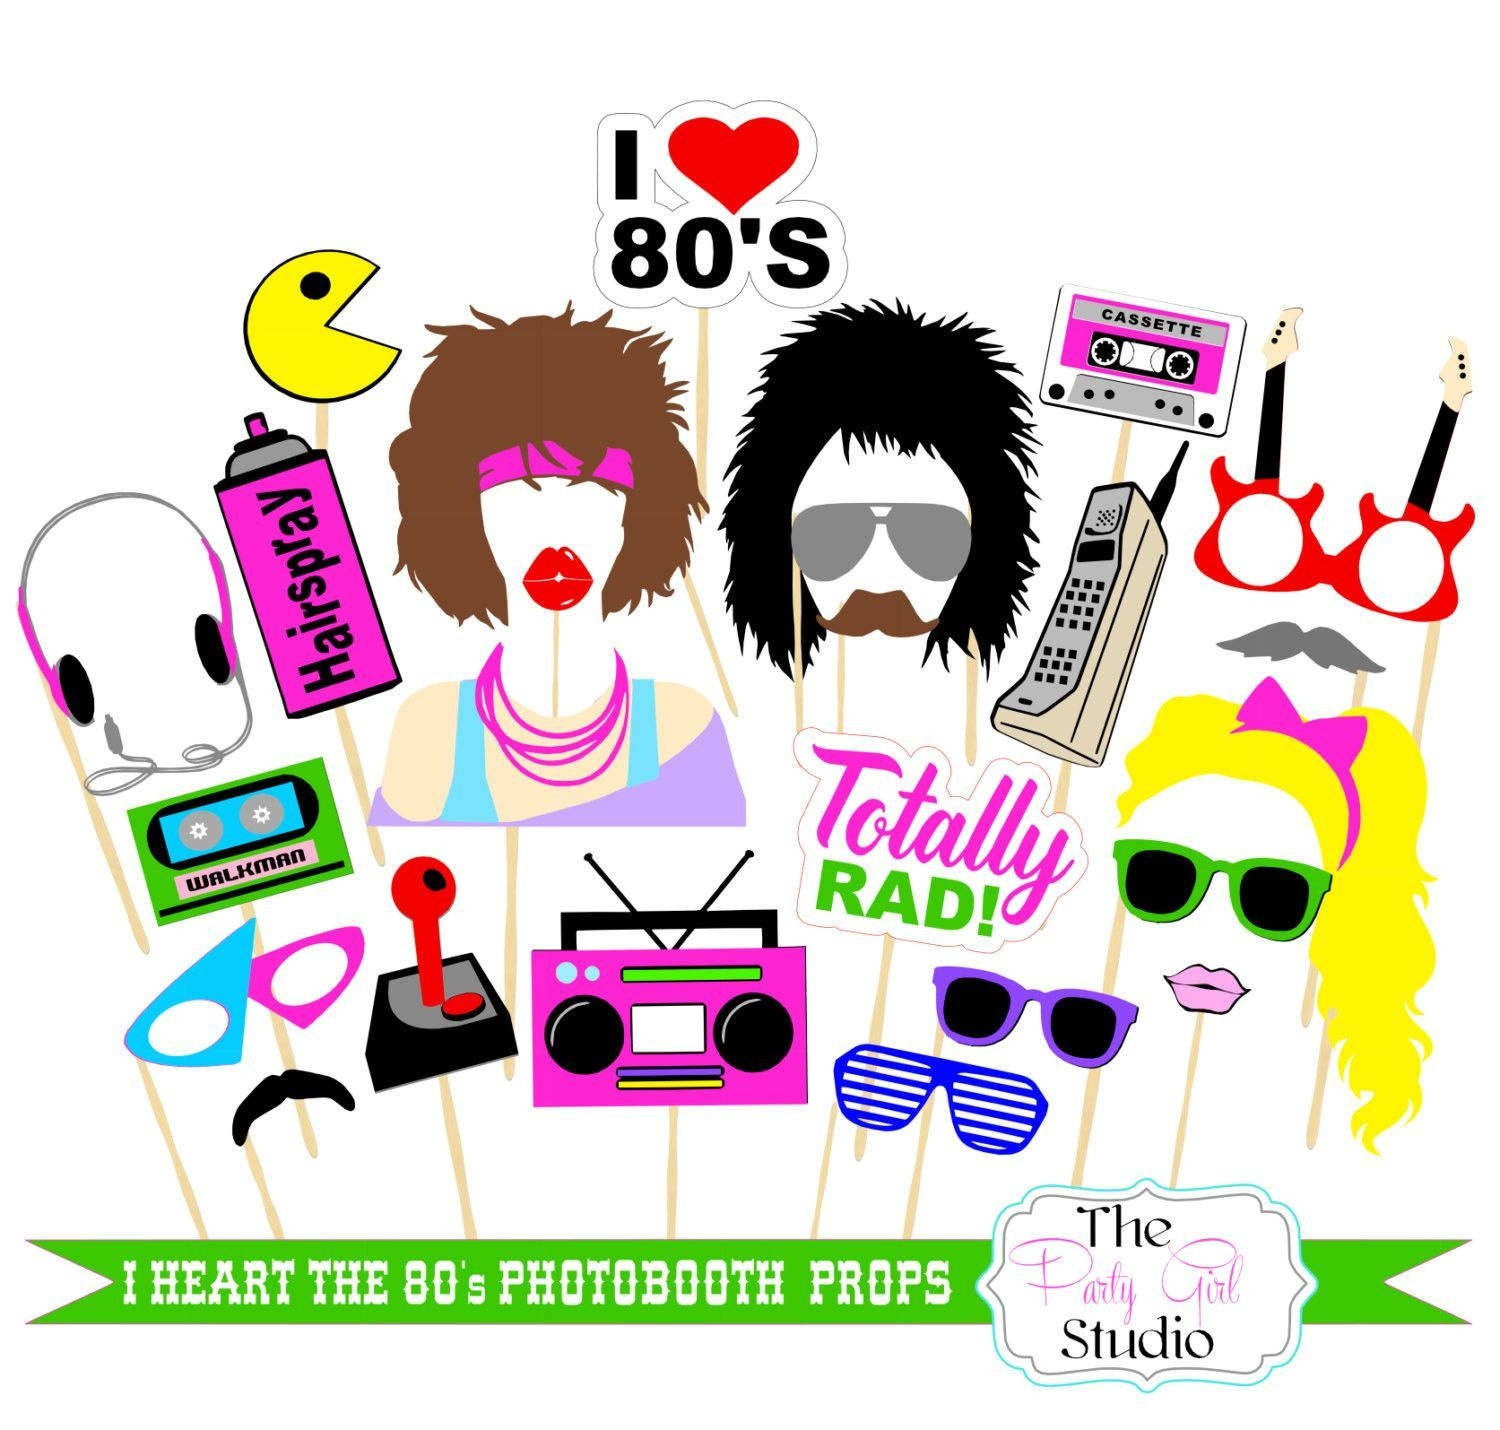 23Pc I Heart The 80's Themed Photo Booth Props/wedding Photobooth - 80S Photo Booth Props Printable Free